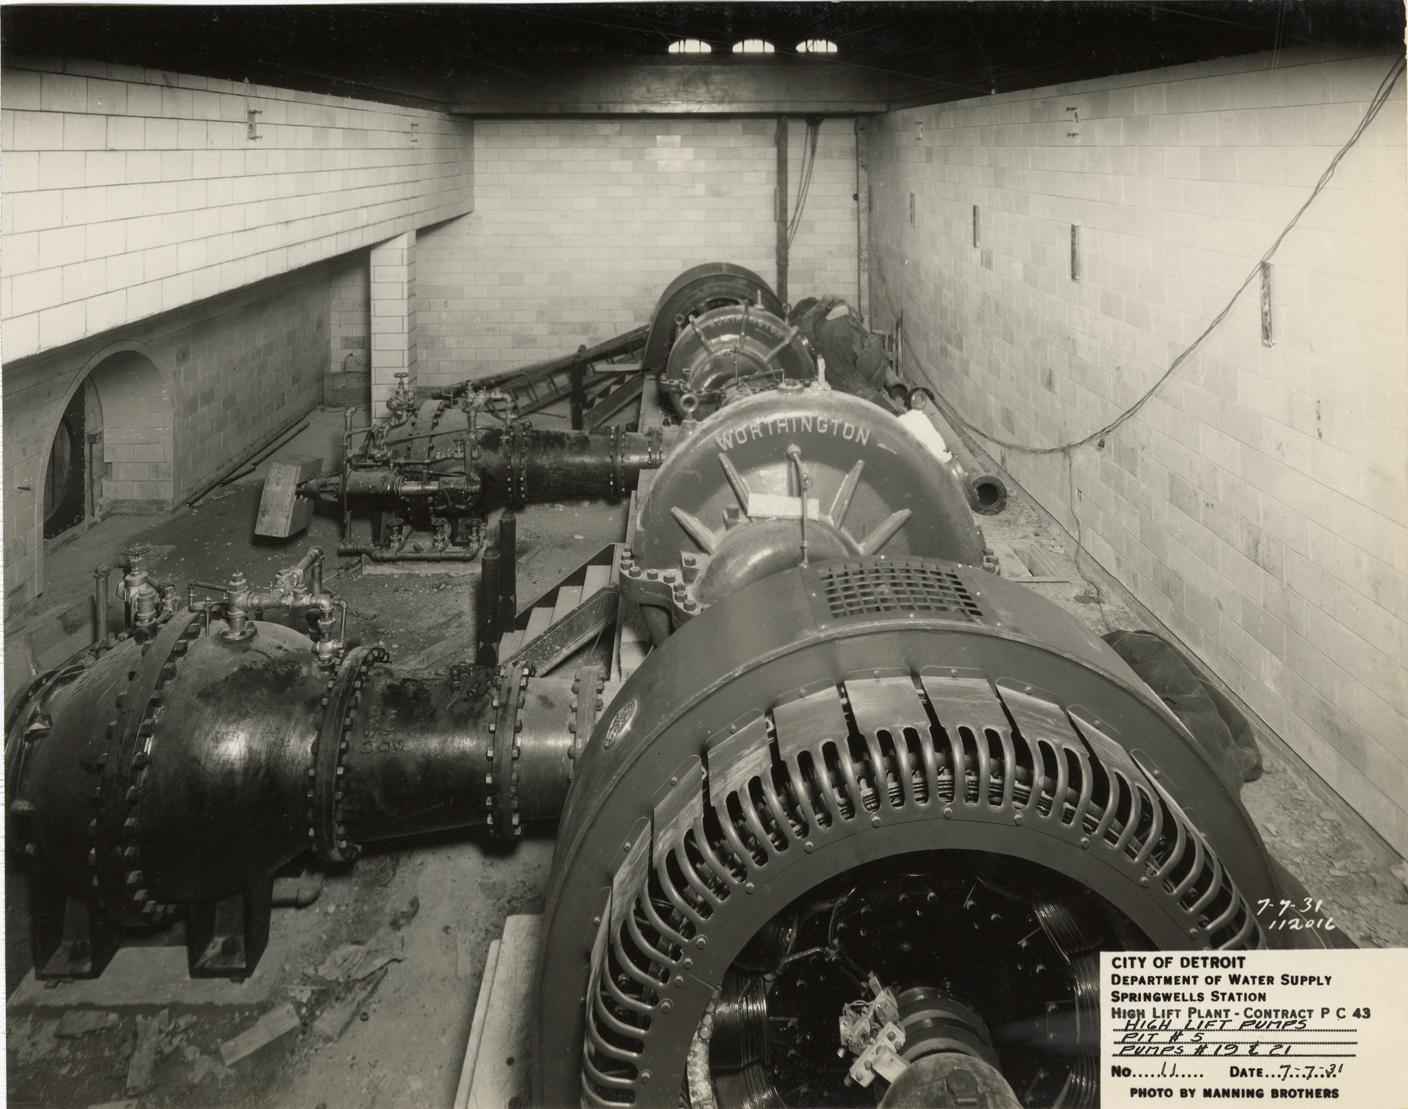 Pump pit with Worthington pumps, high lift plant during